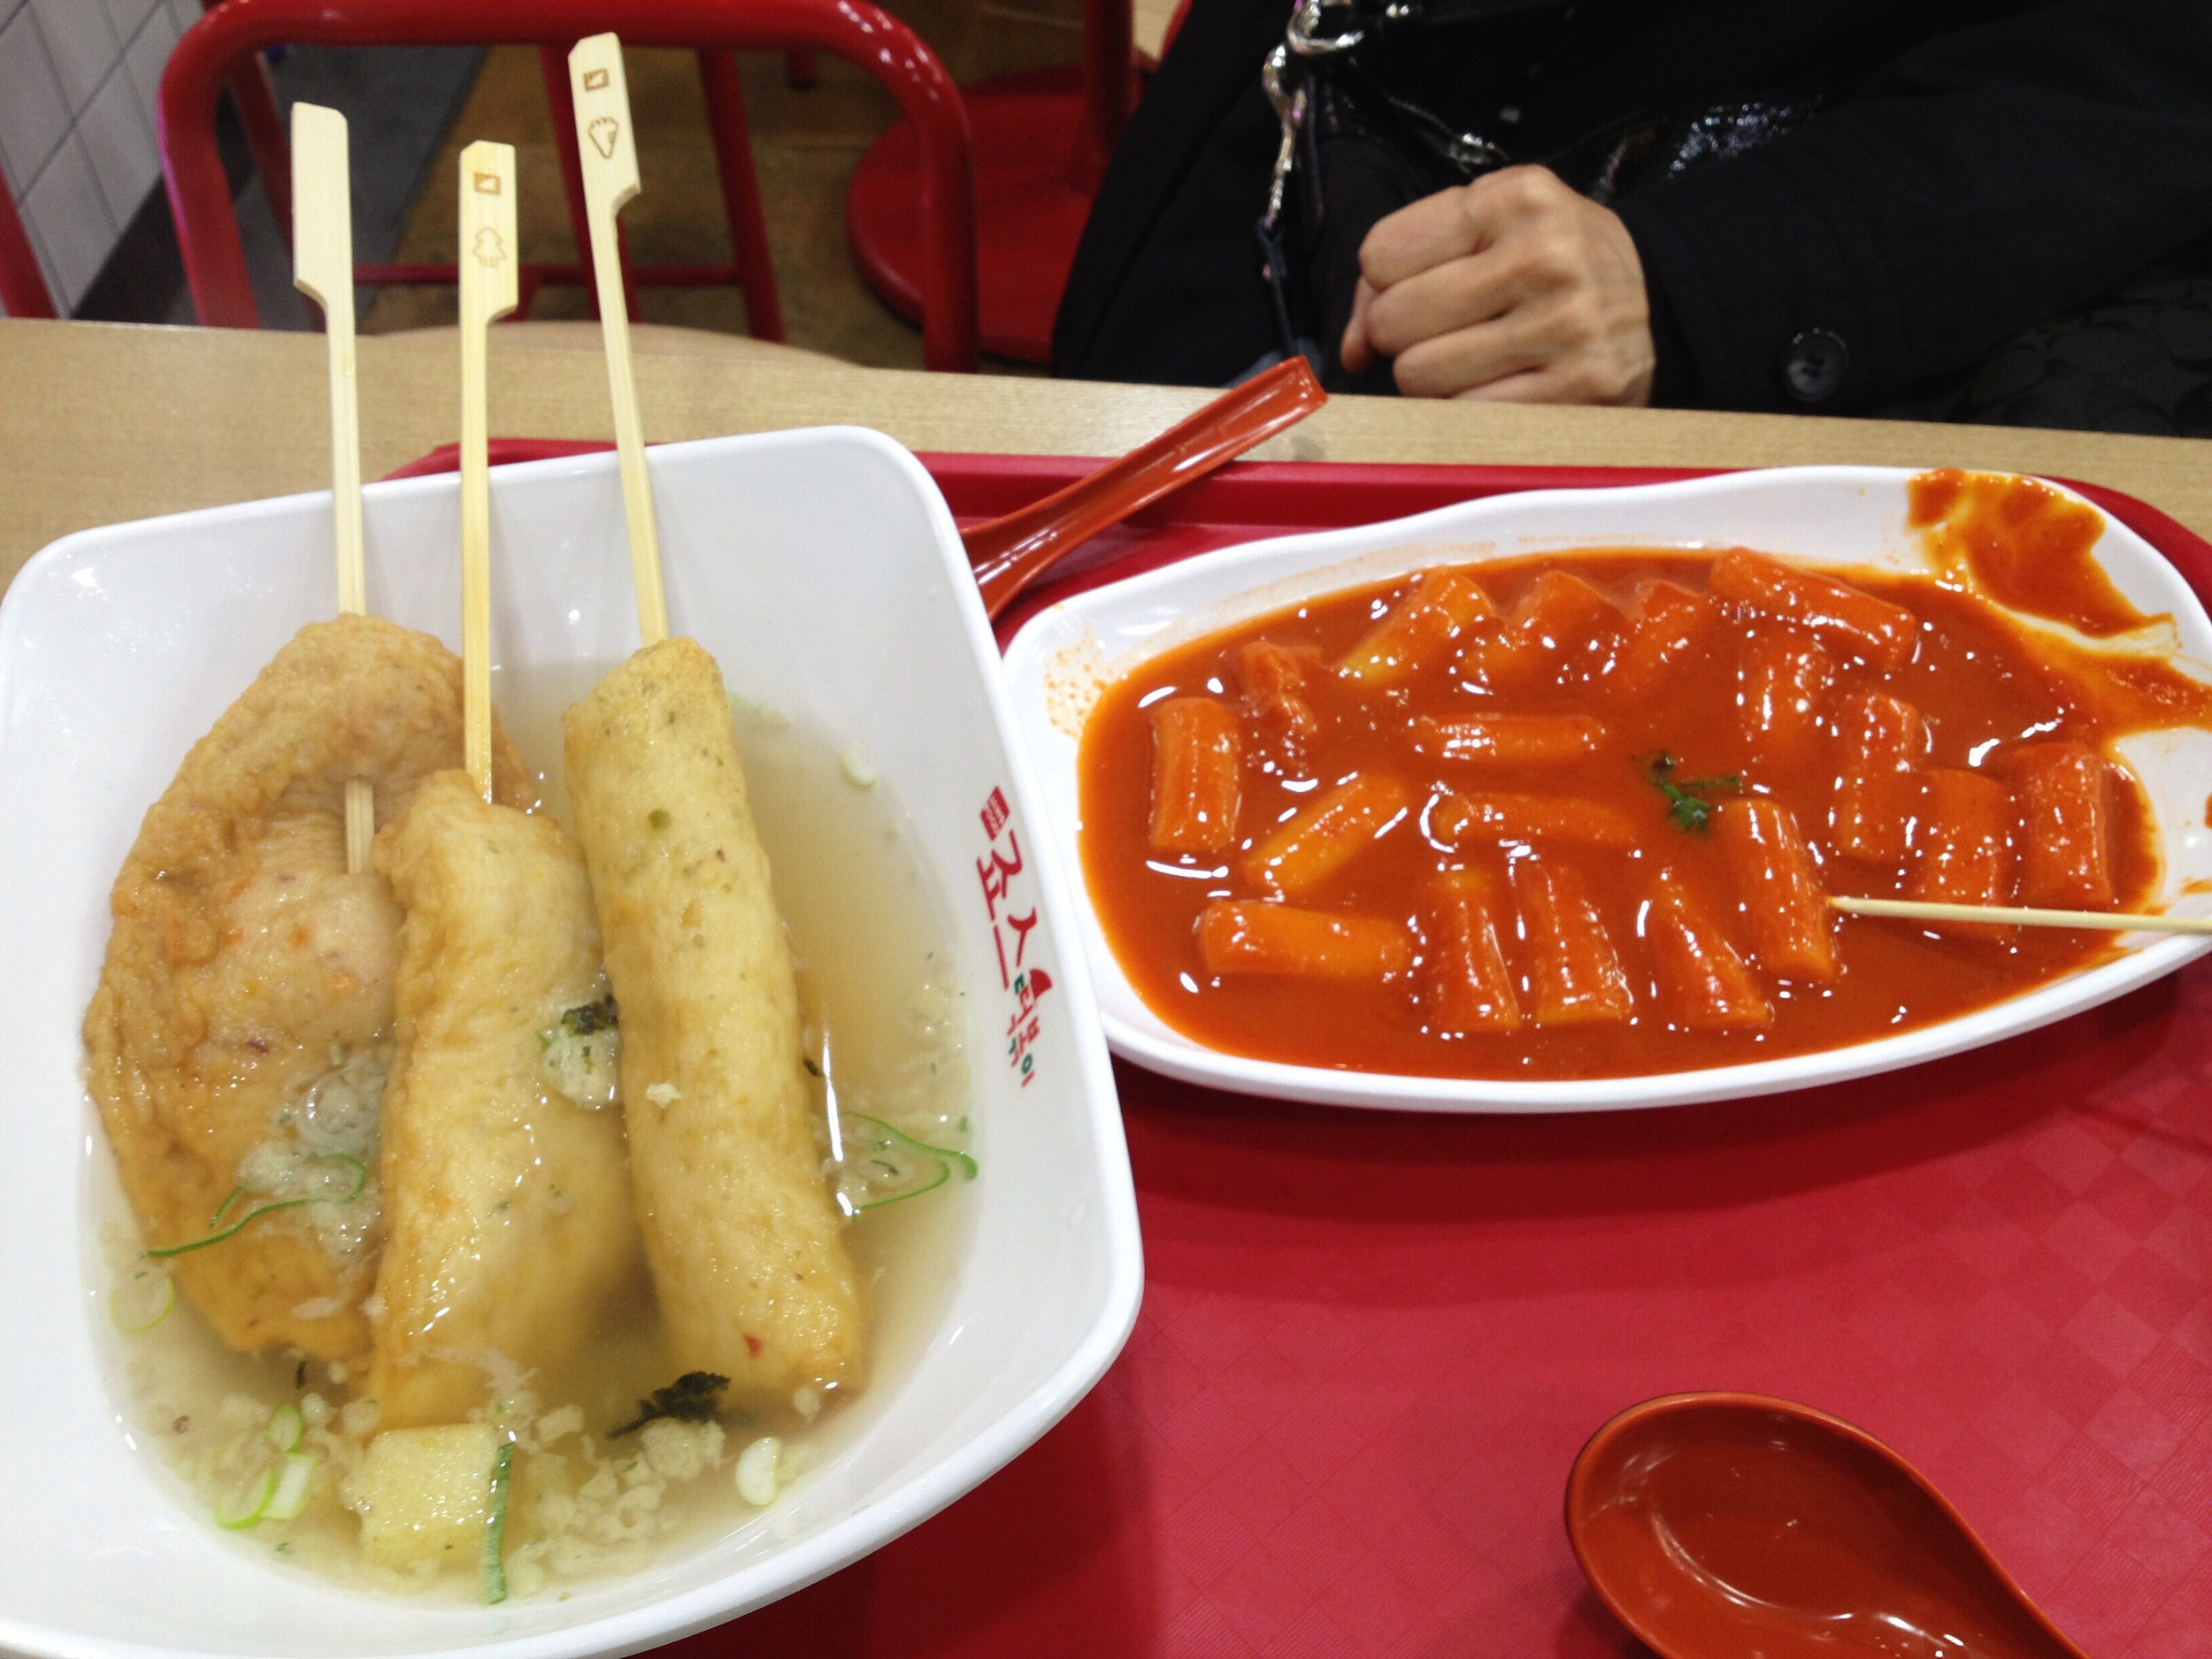 Bunsik from my last visit to Seoul. Odeng on the left and ddukbokki on the left. All day y'all!